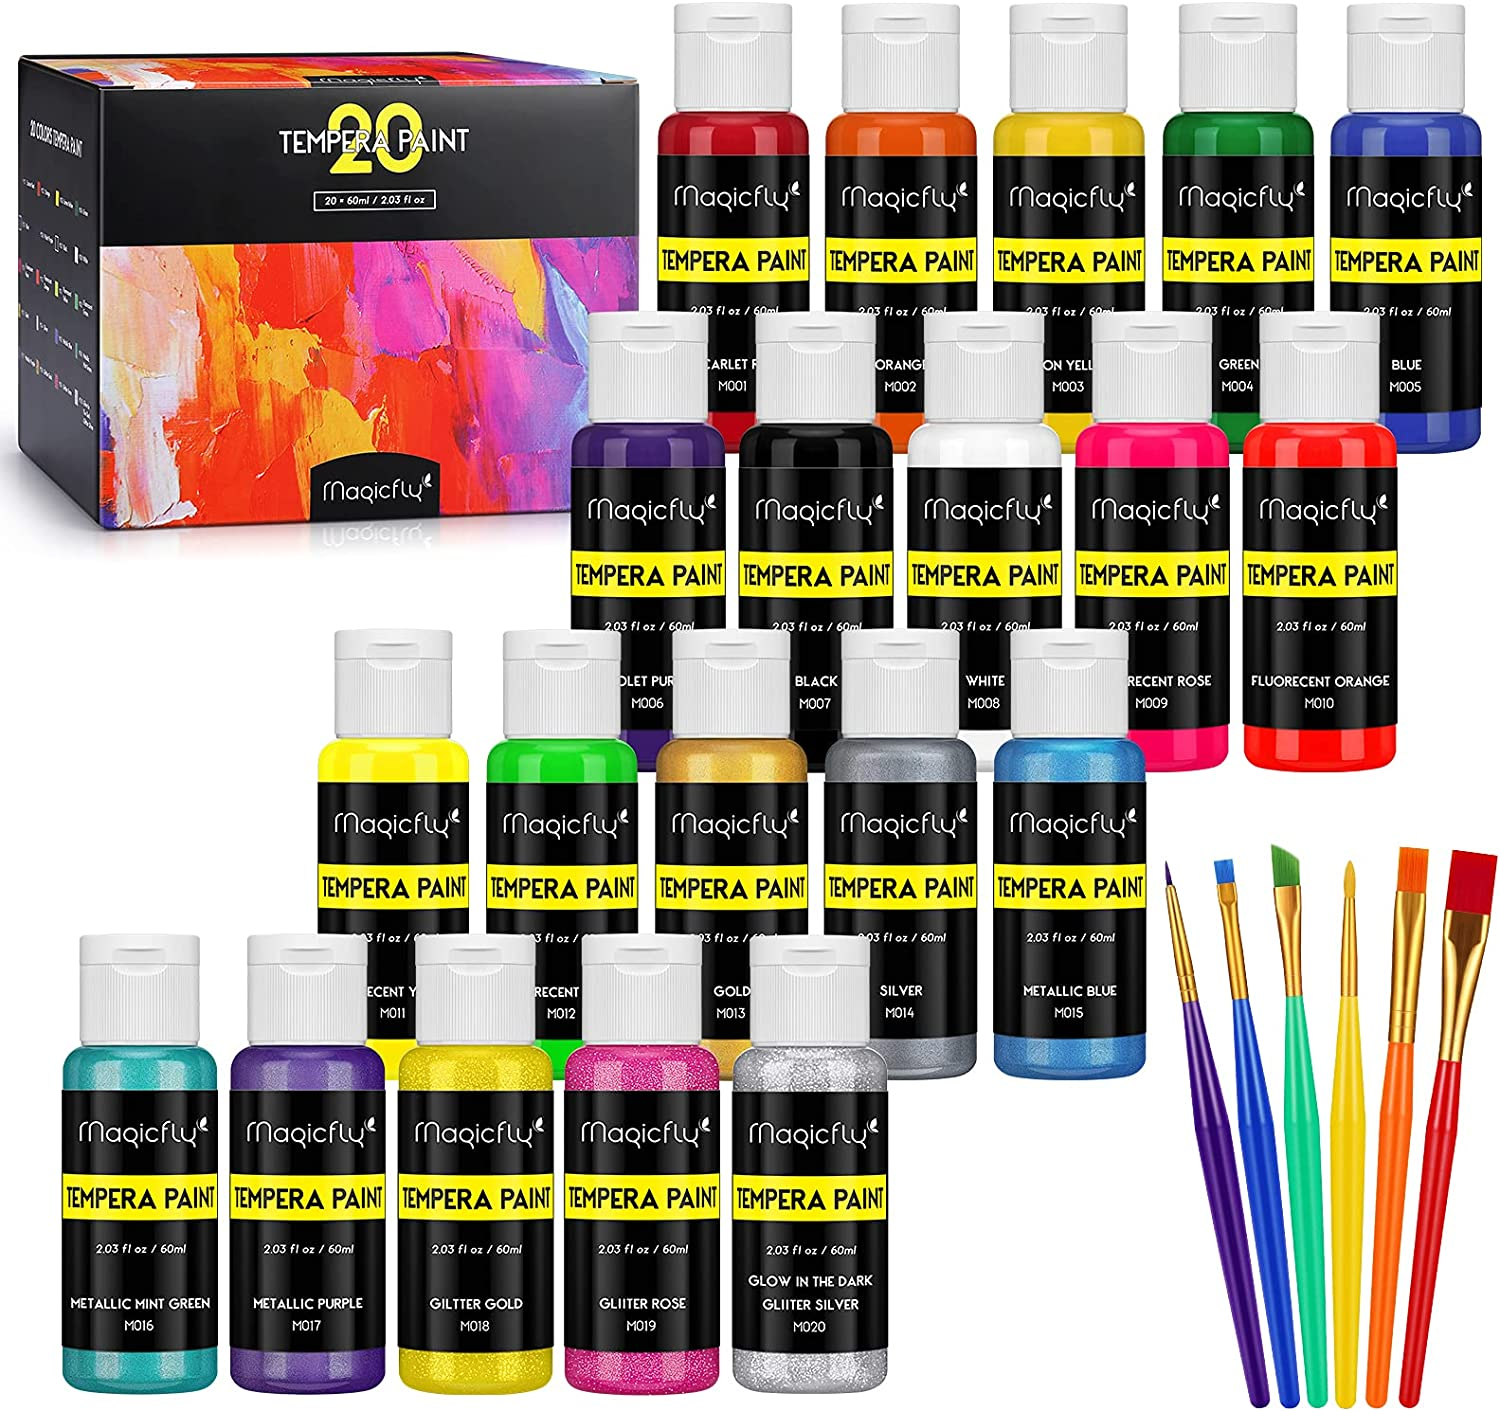 Magicfly Washable Max 43% OFF Kids Paint Set of 2 oz 5 ☆ very popular Each Tempera 20 Colors